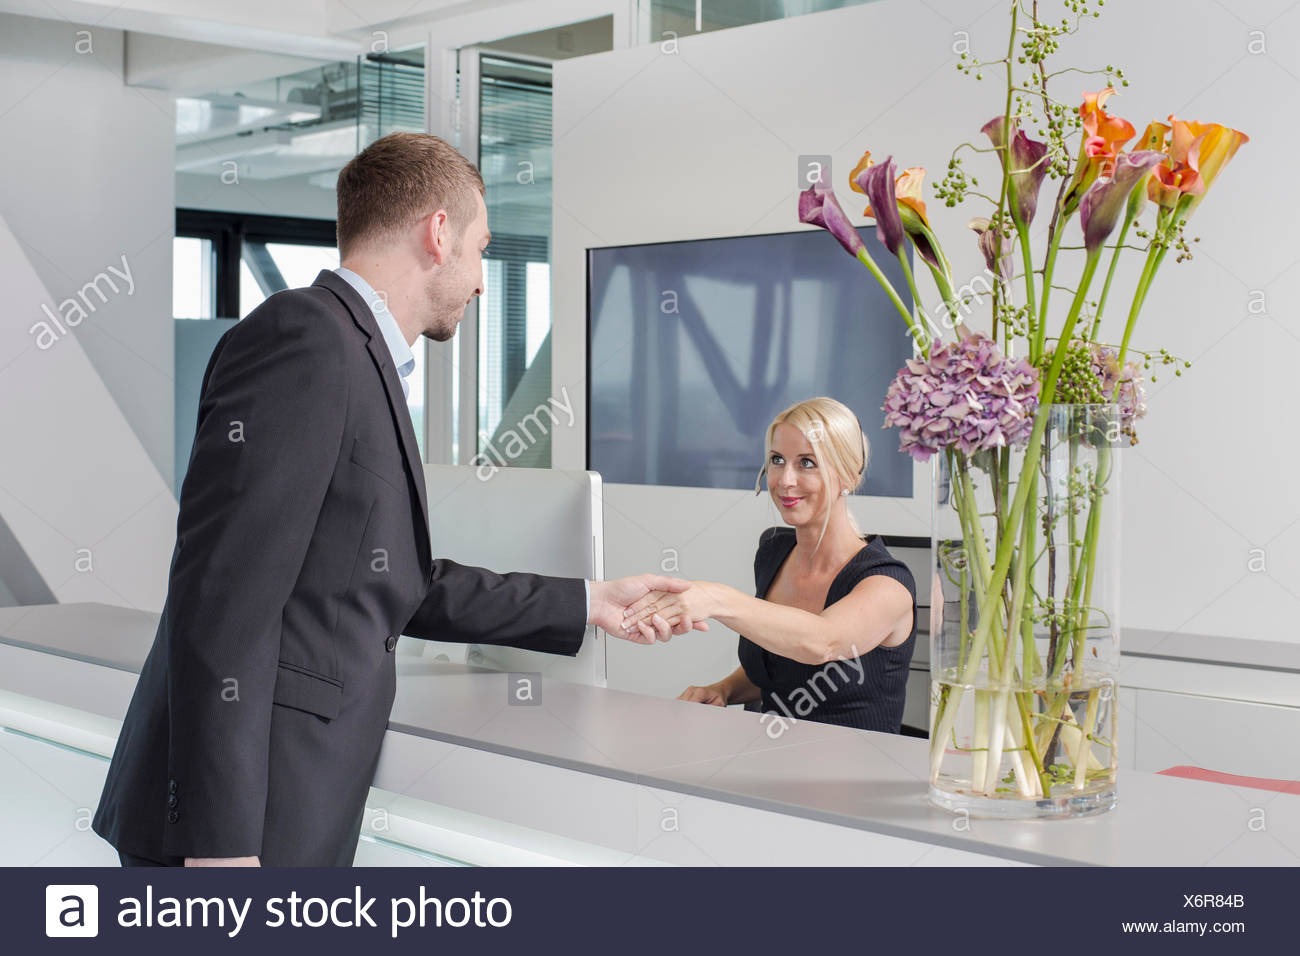 Man shaking hands with female receptionist - Stock Image